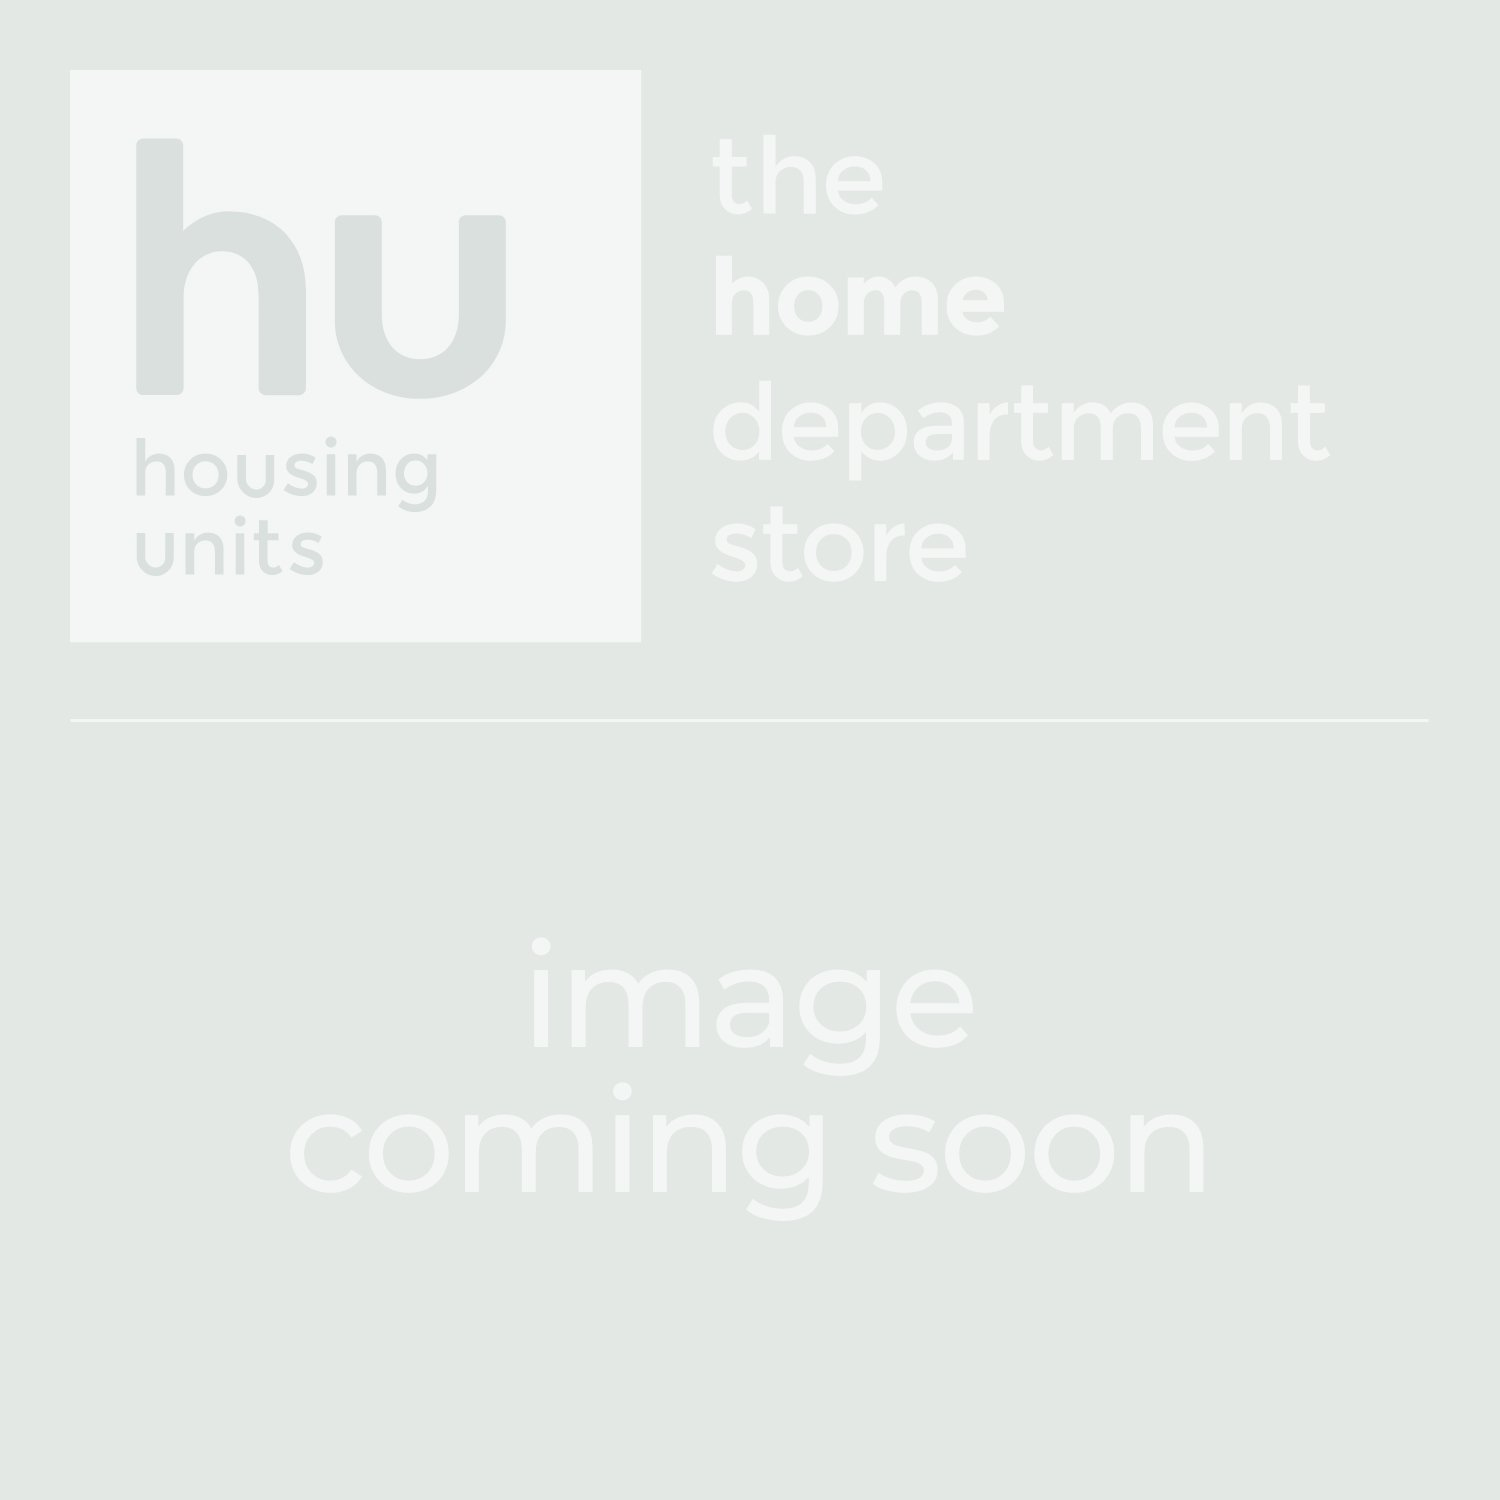 Windsor Mustard Coloured Velvet Upholstered Round Footstool - Lifestyle | Housing Units